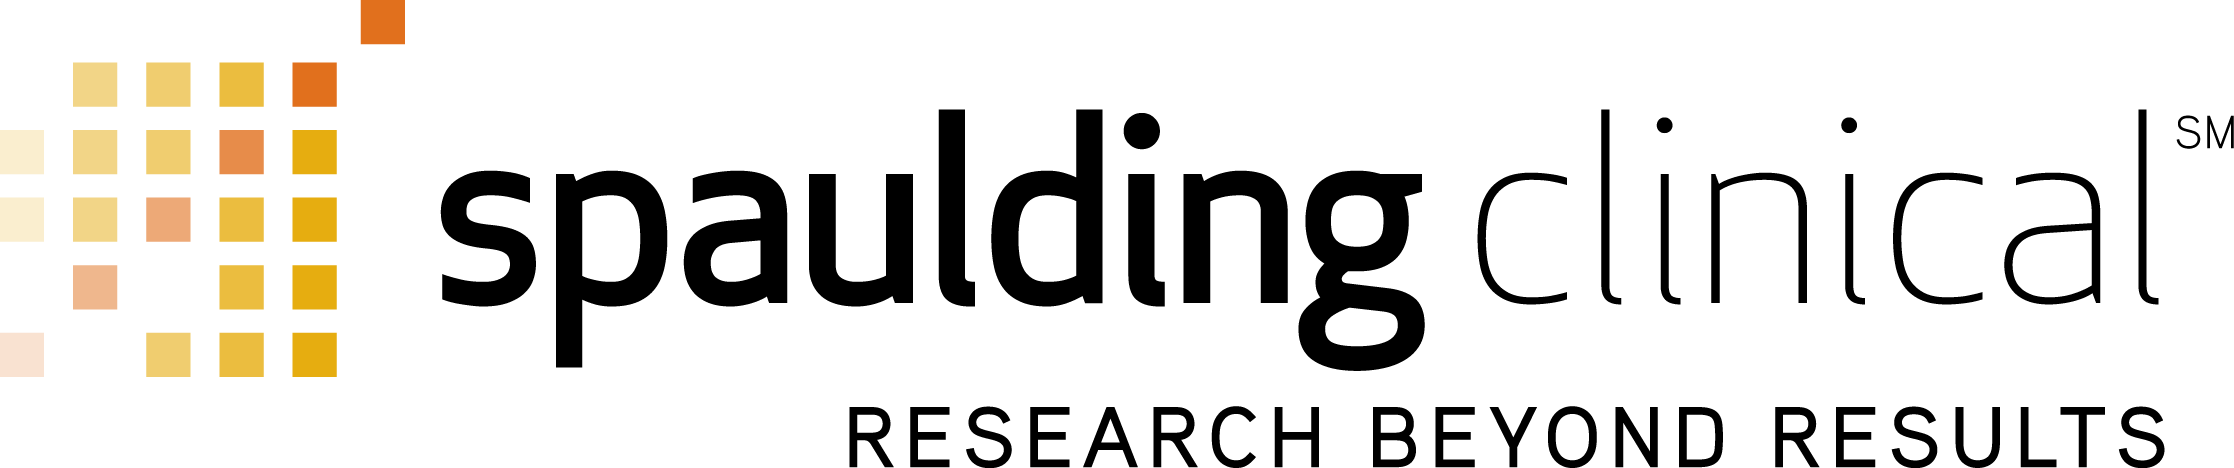 Spaulding Clinical Research Inc